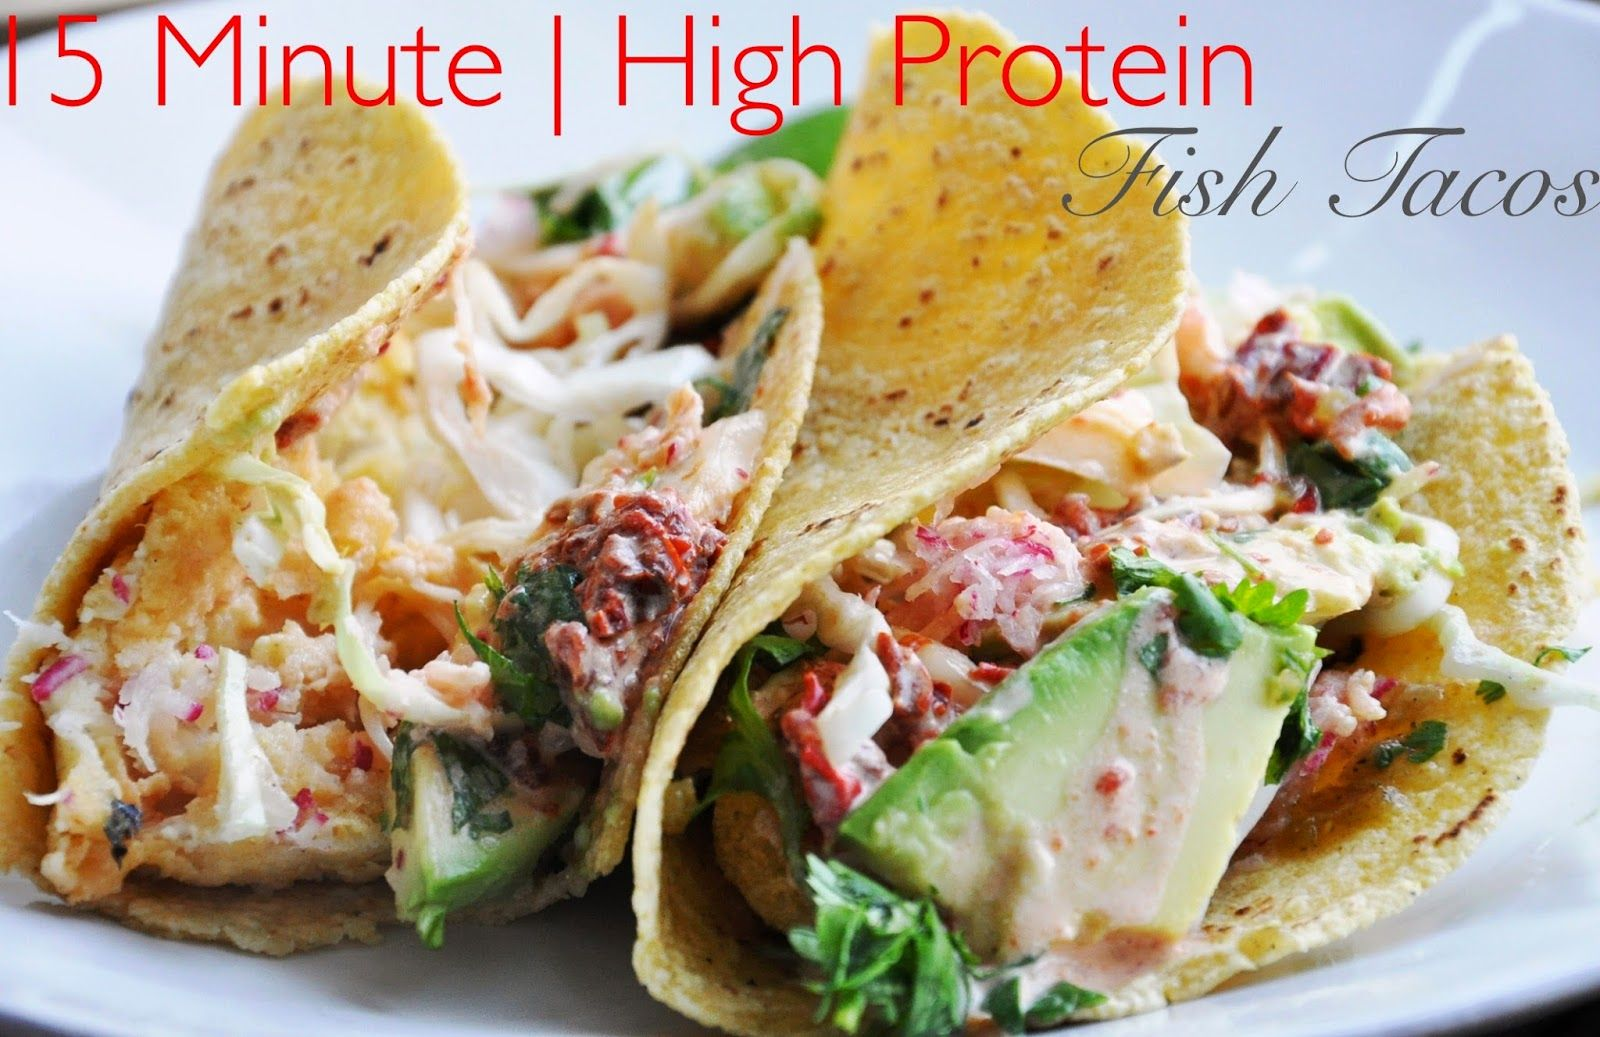 15 Minute Fish Tacos With Chipotle Sauce Fish Tacos Chipotle Sauce Dinner Recipes